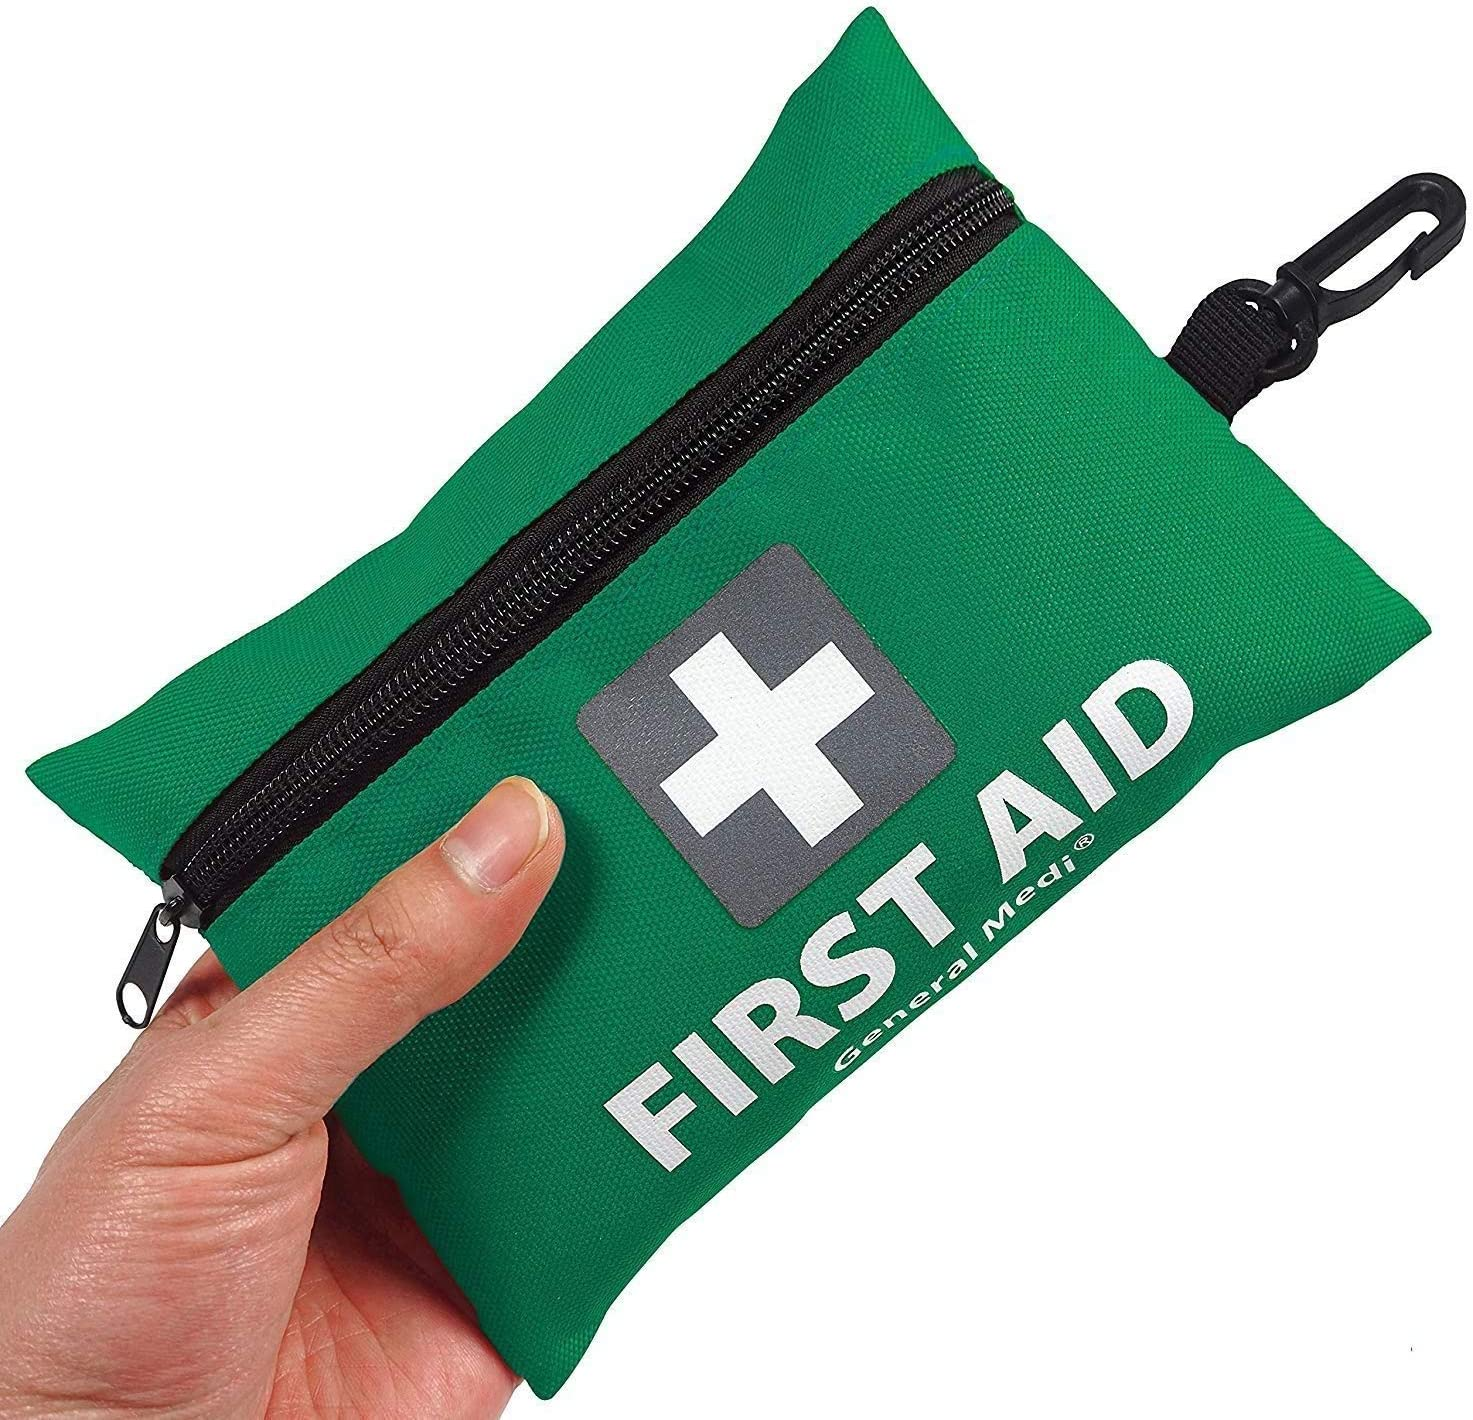 FIRST AID KIT-MOTORCYCLE Emergency Care ESSENTIAL ACCIDENT Travel Camping and Outdoor JOURNEY SAFETY BOX